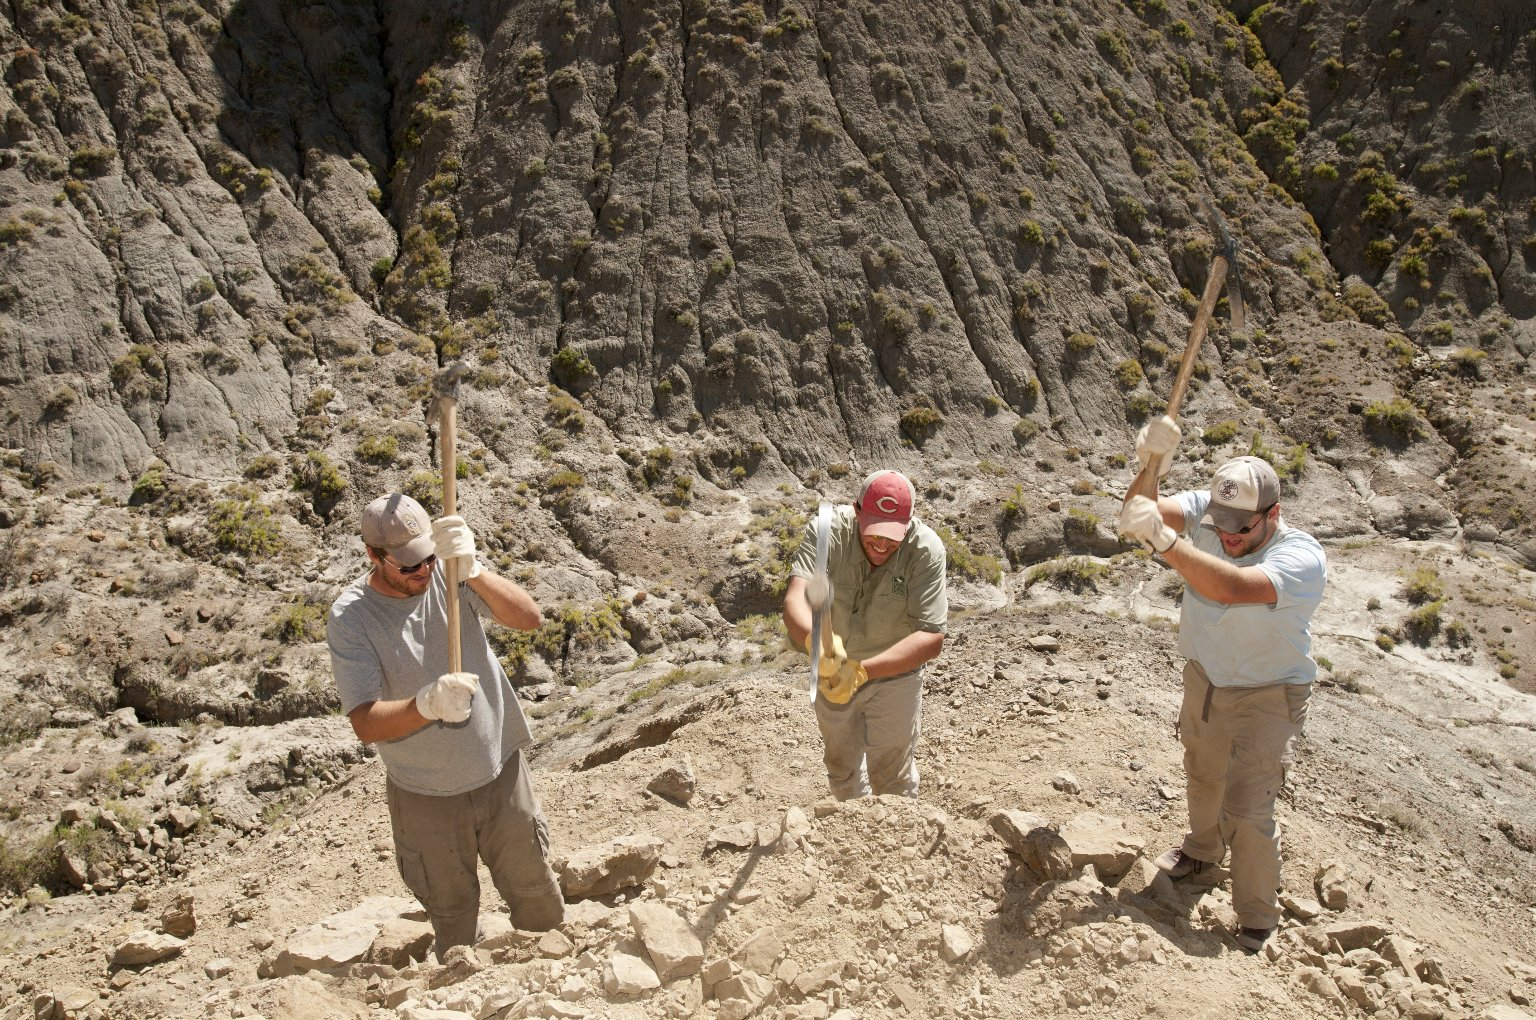 L-R: Dr. Ian Miller, Dane Miller, and David Allen wield picks at an excavation site on the Kaiparowits Plateau.